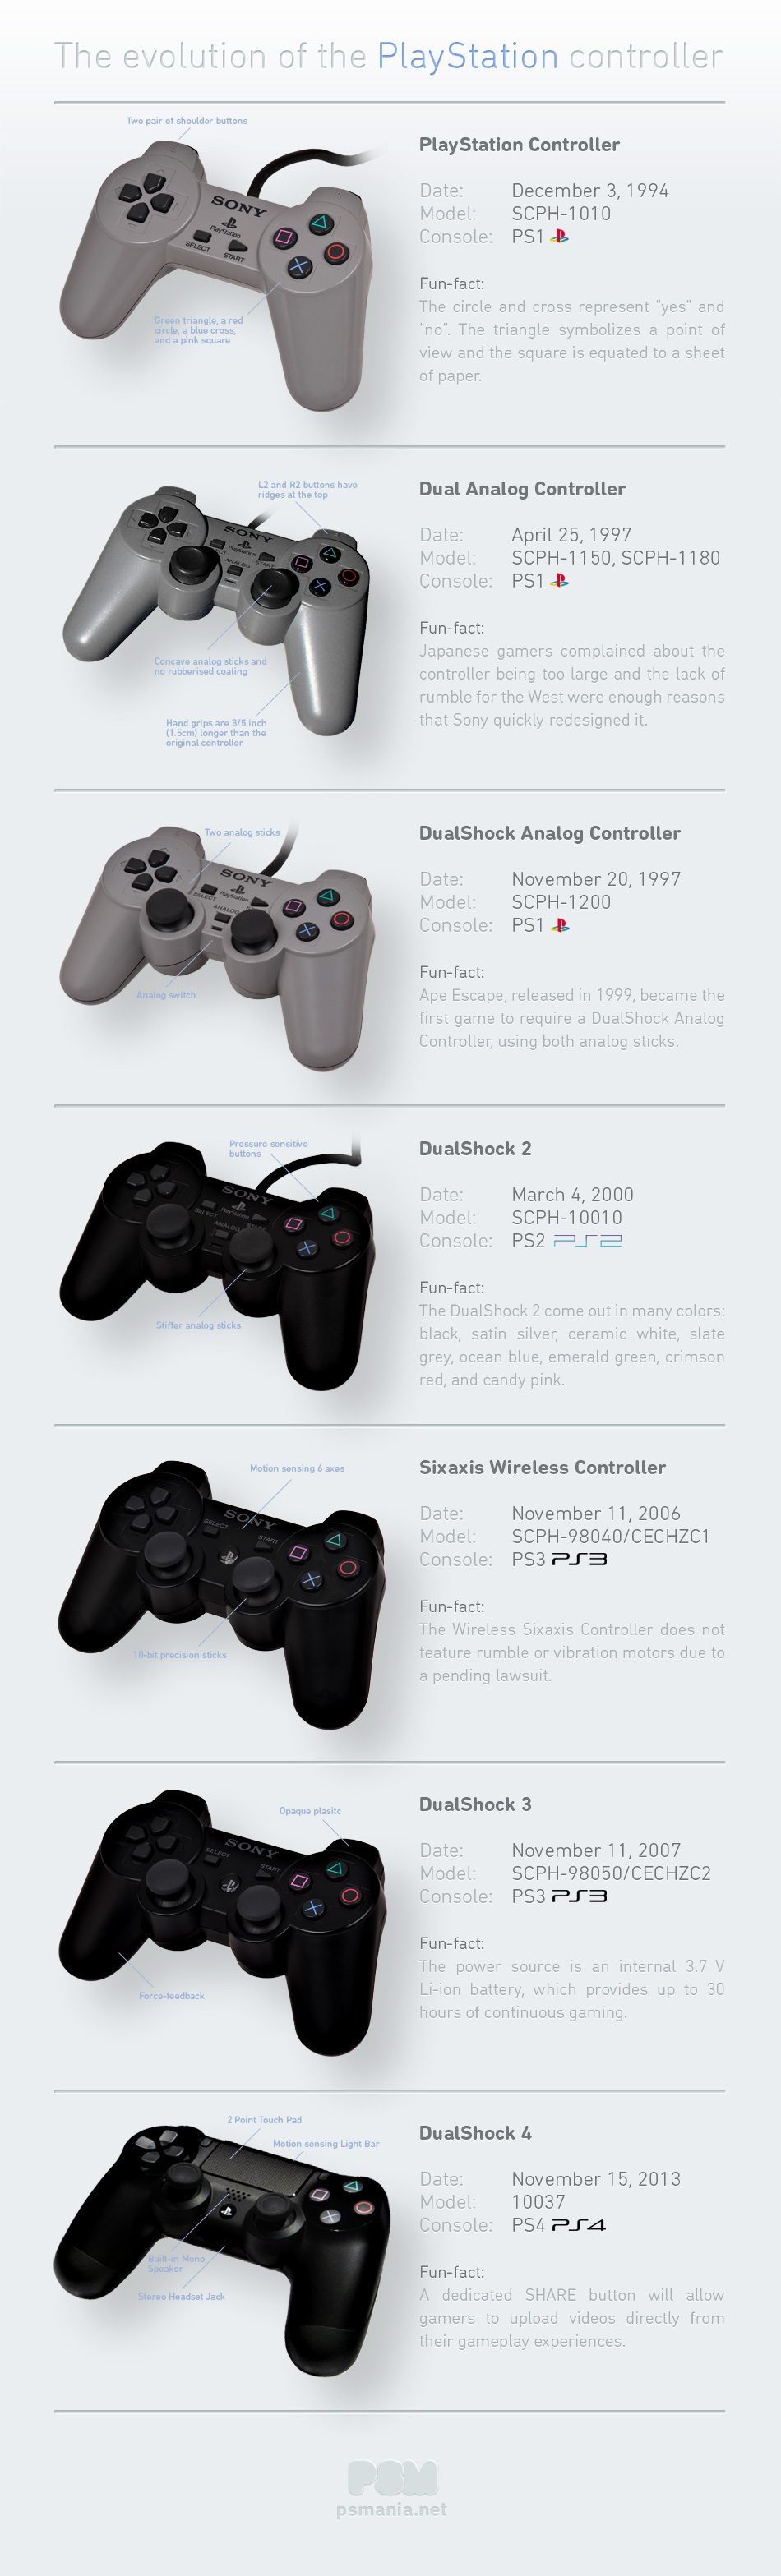 The evolution of the PlayStation controller